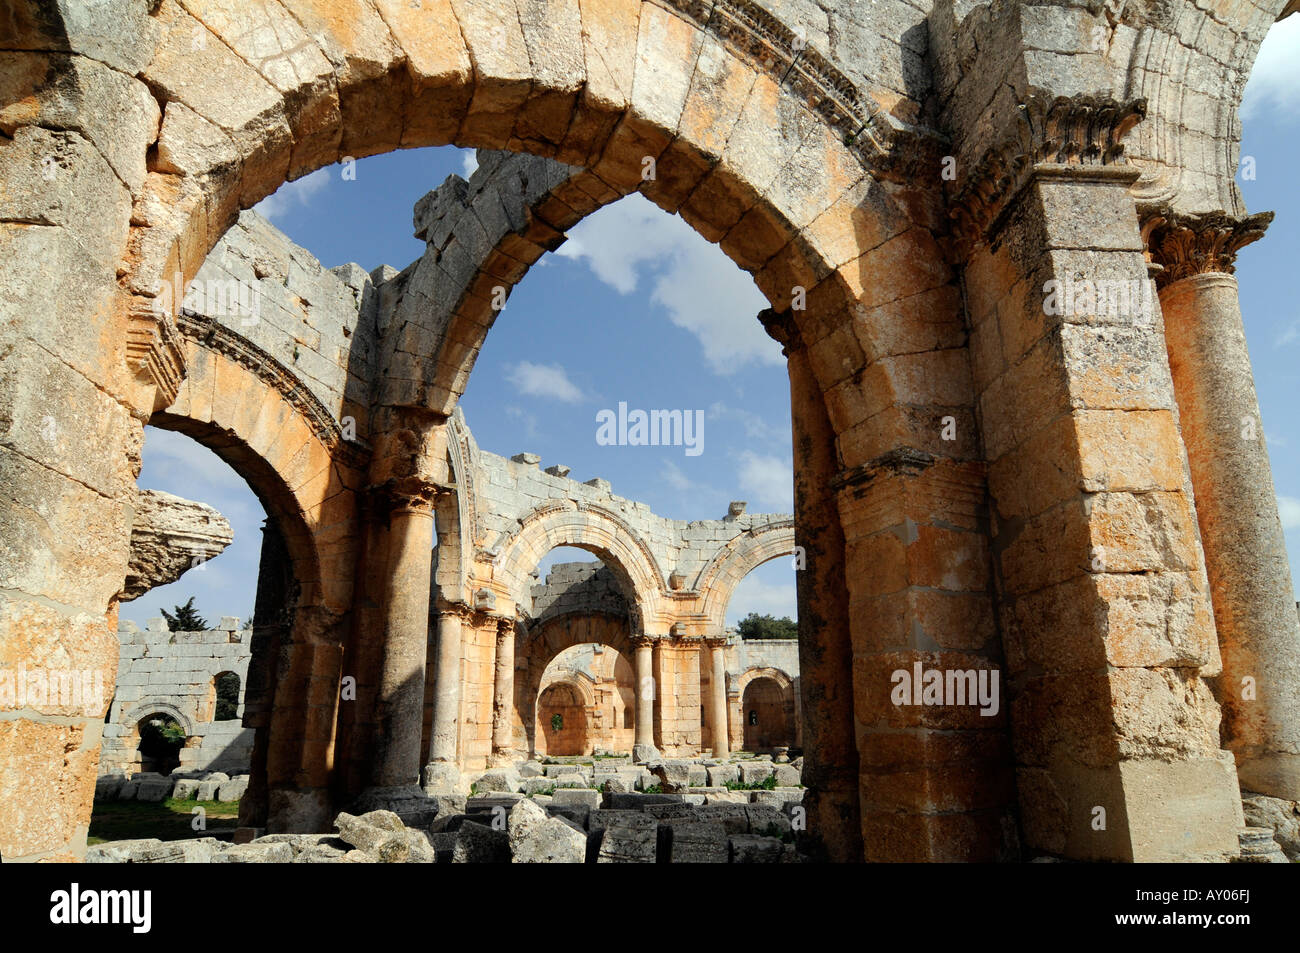 Ruins of the St Simeon basilica, 'qala'at samaan', a historical and tourist landmark located near Aleppo, - Stock Image